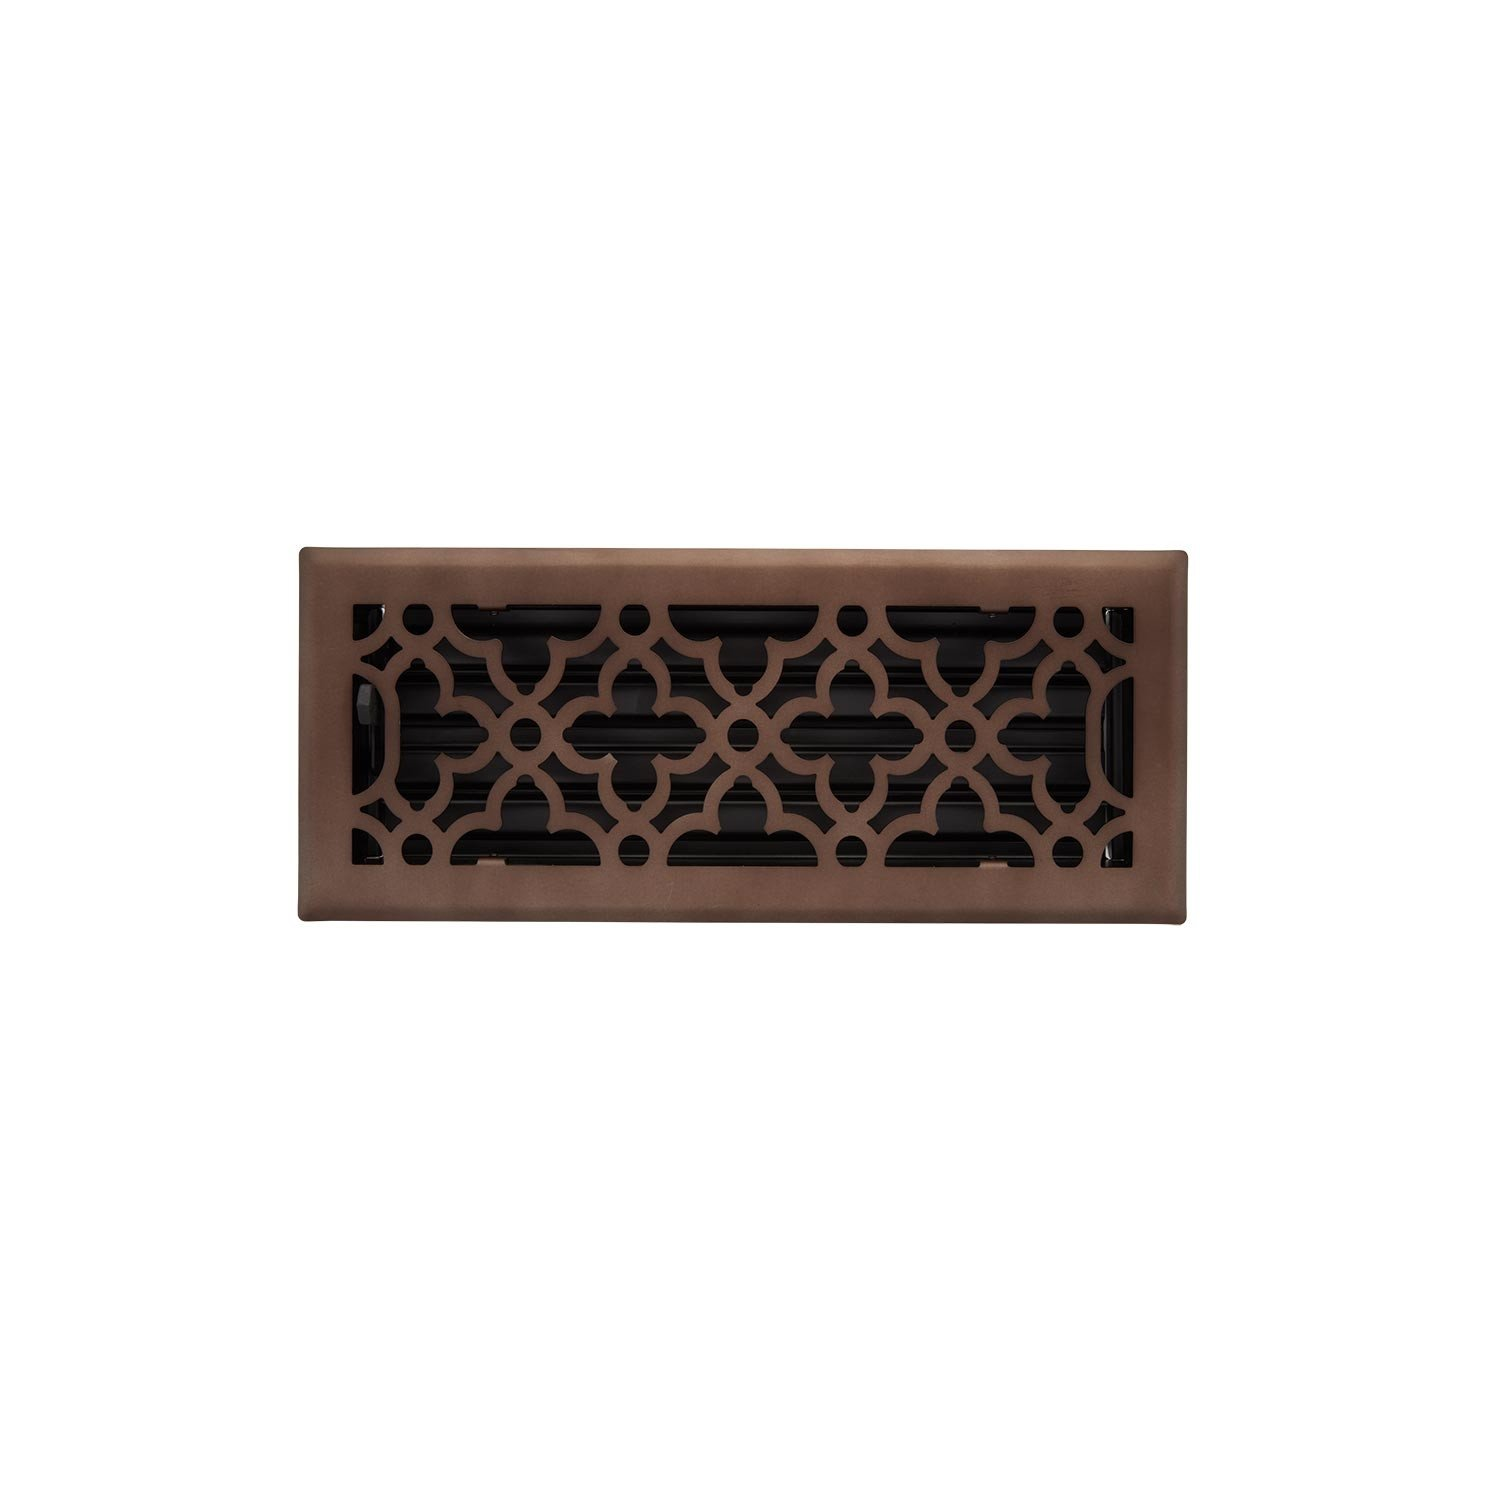 Naiture Bal 3-3/4'' X 12'' (5-1/4'' X 13-3/8'' Overall) Steel Floor Register in Oil Rubbed Bronze Finish